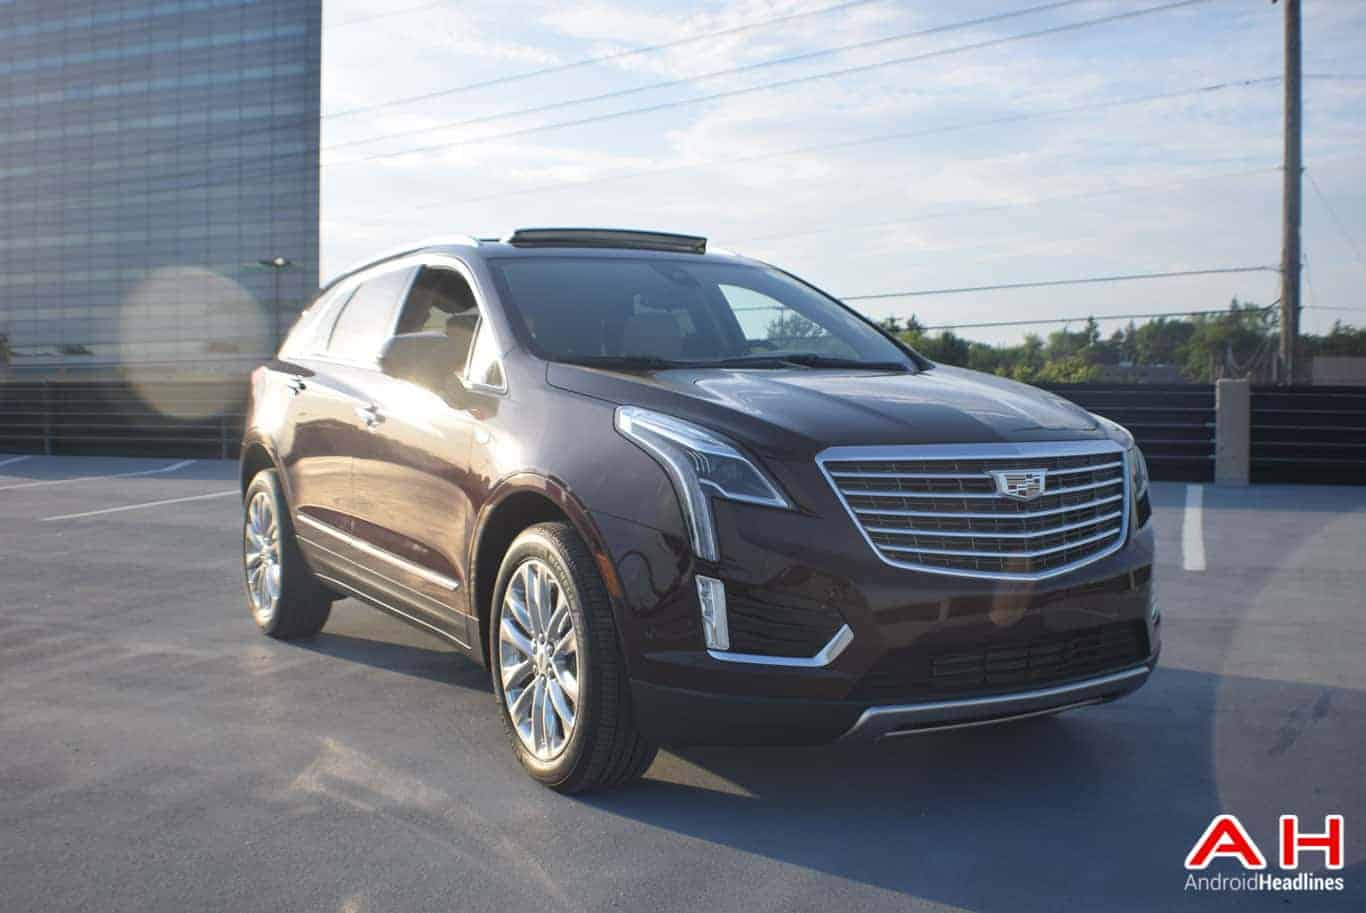 2017 Cadillac XT5 Android Auto Review AM AH 53